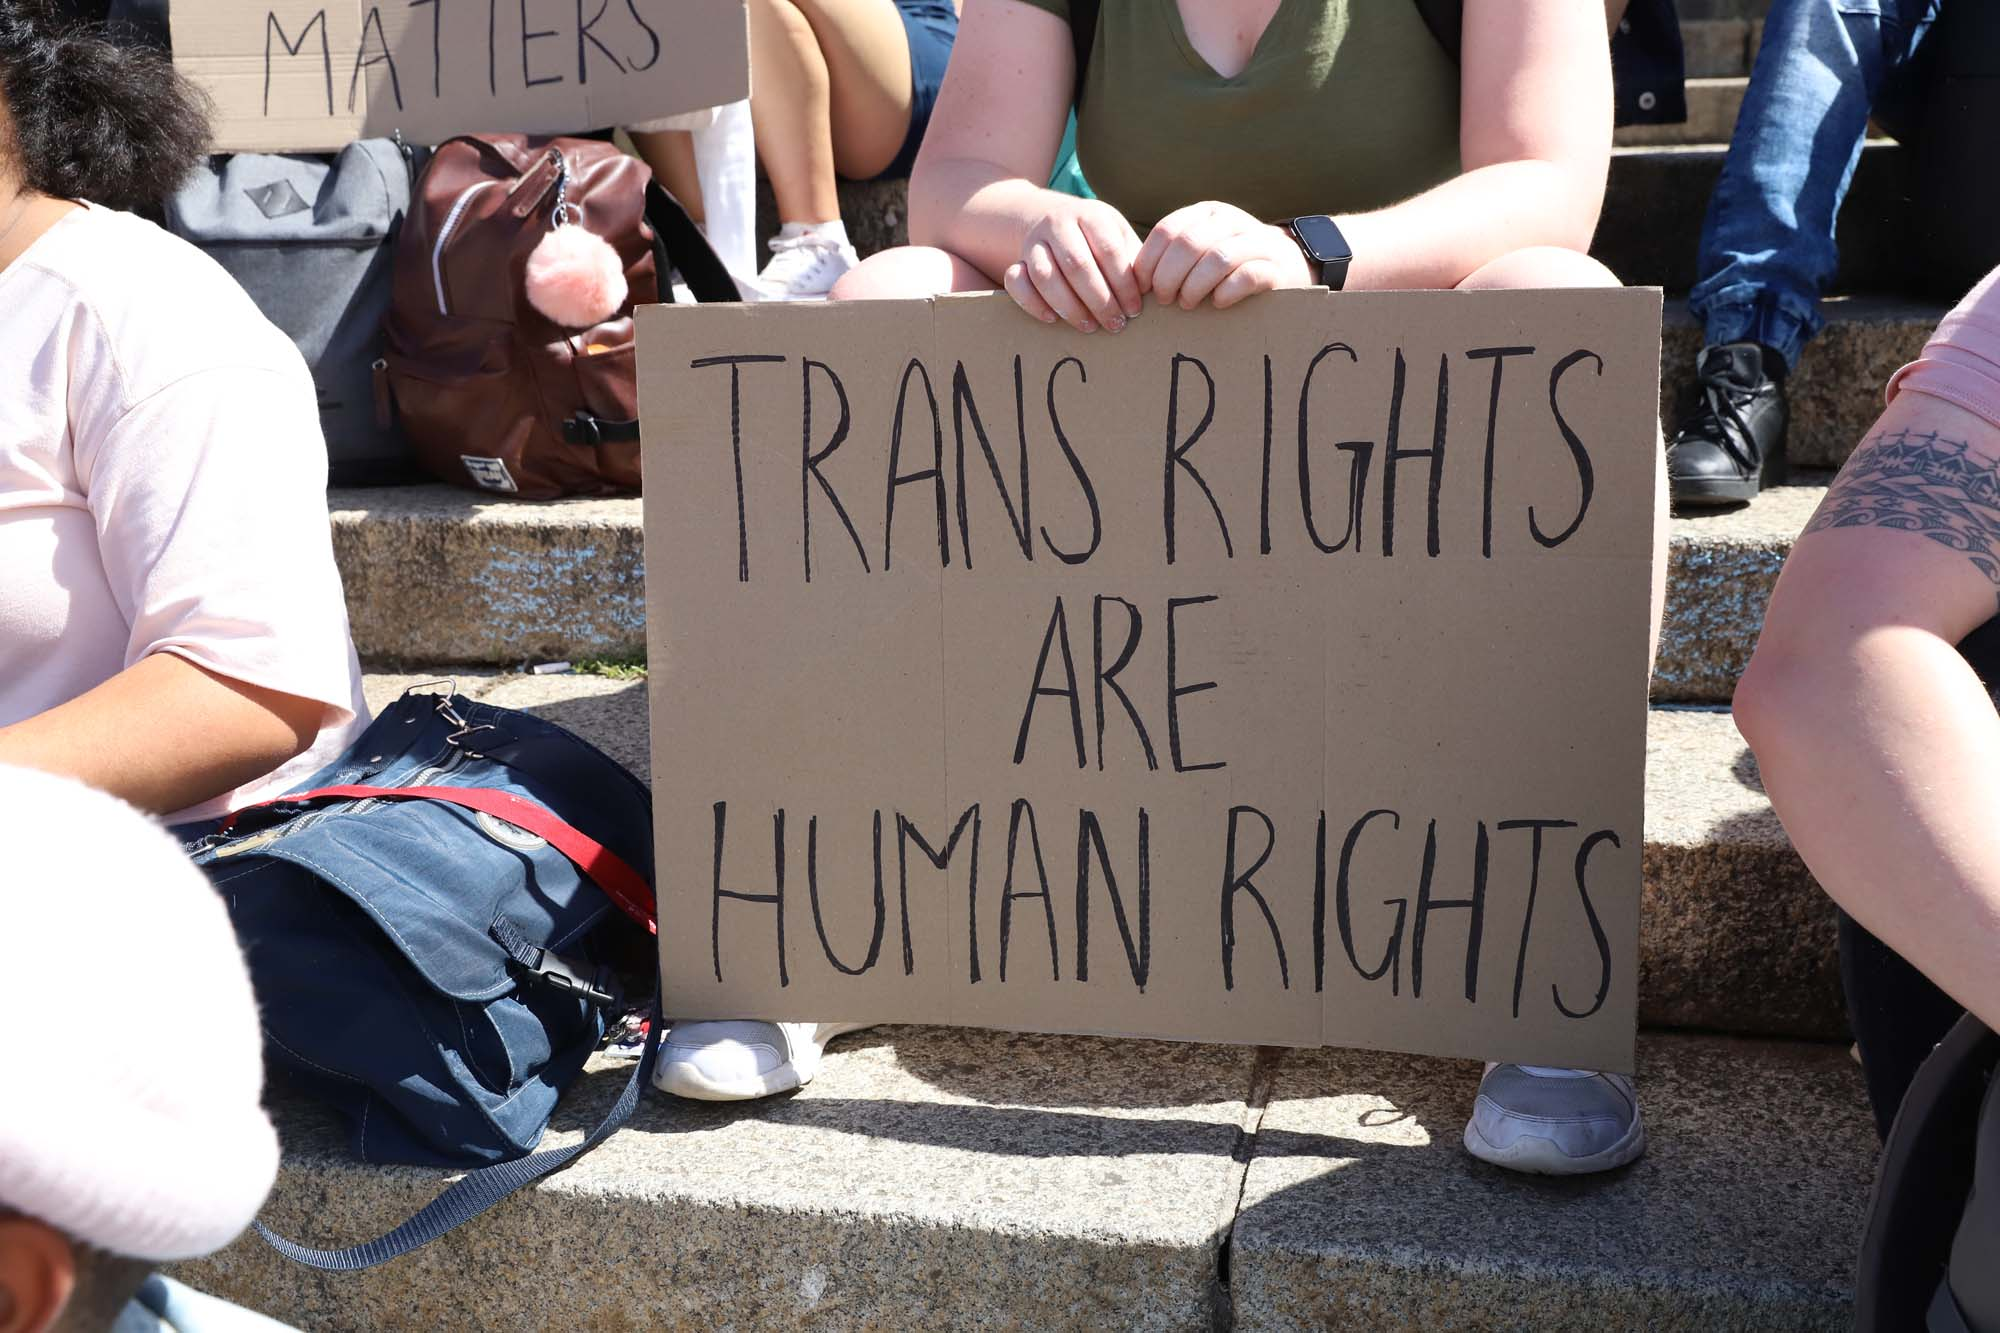 The Rainbow UCT march in solidarity with the trans community highlighted issues surrounding stock shortages of Depo-Testosterone, a hormone replacement therapy used by transgender people transitioning from female to male.